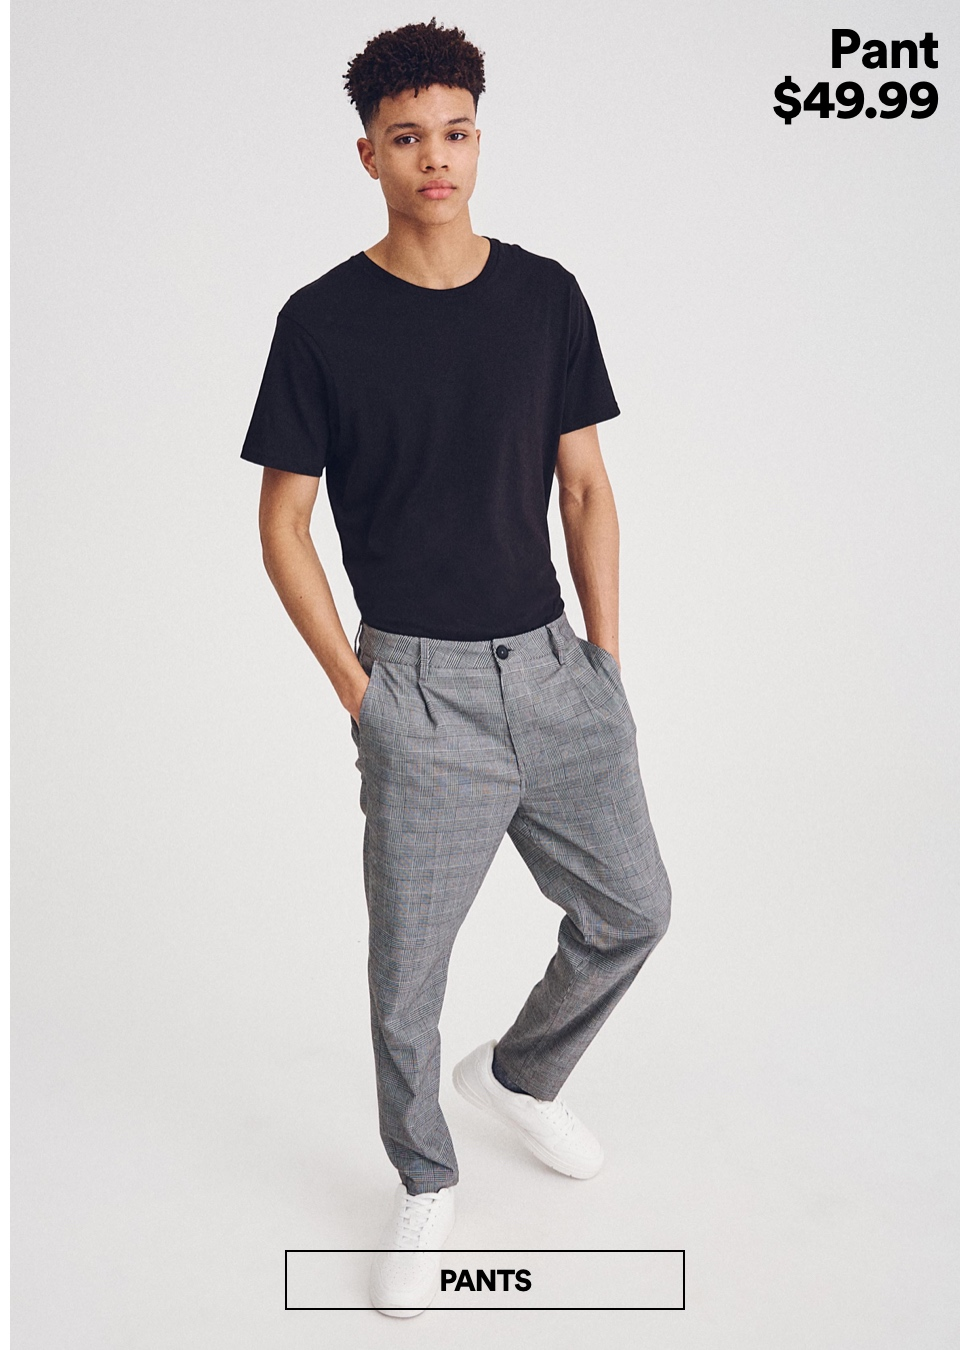 Men's Pants. Click to Shop.